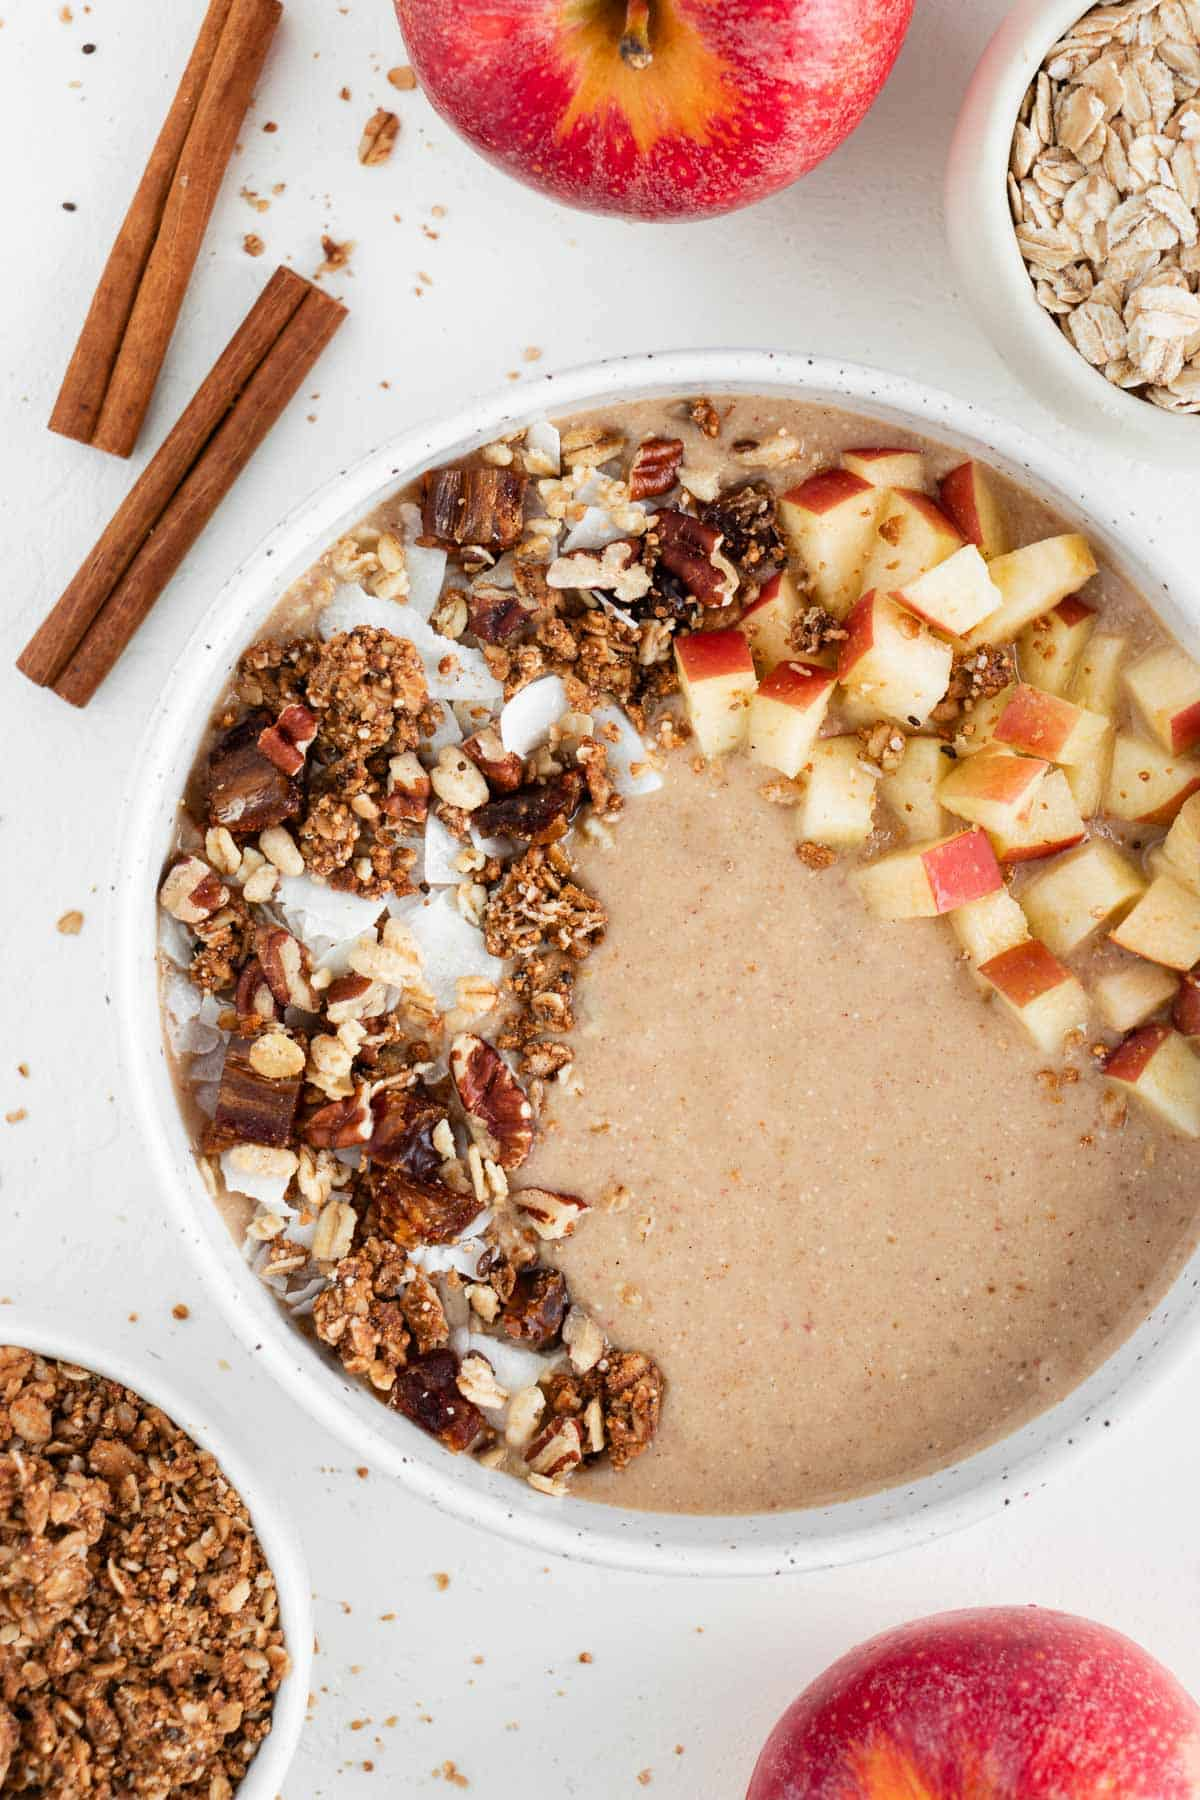 an apple pie smoothie bowl inside a ceramic bowl surrounded by oats, granola, cinnamon sticks, and apples